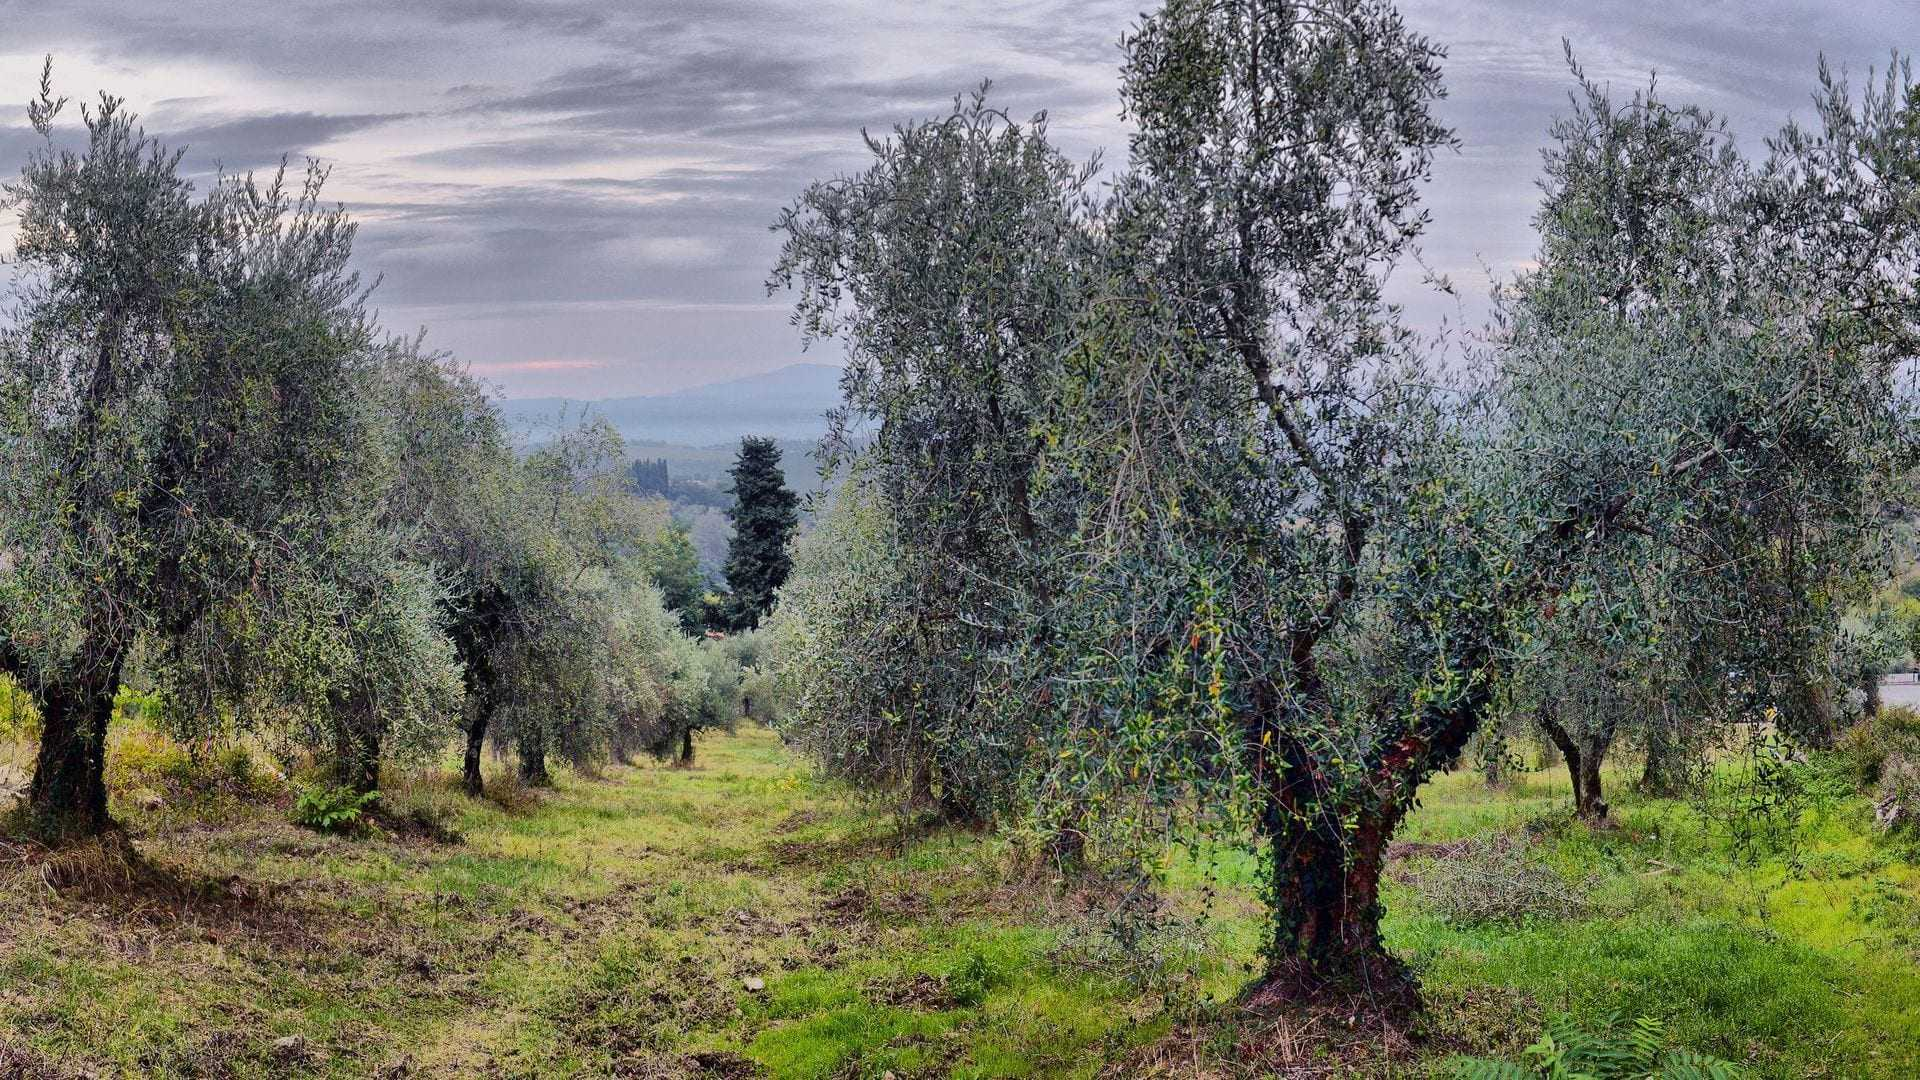 Bad Weather Ahead of Harvest Dampens Spirits of Italy's Olive Oil Producers